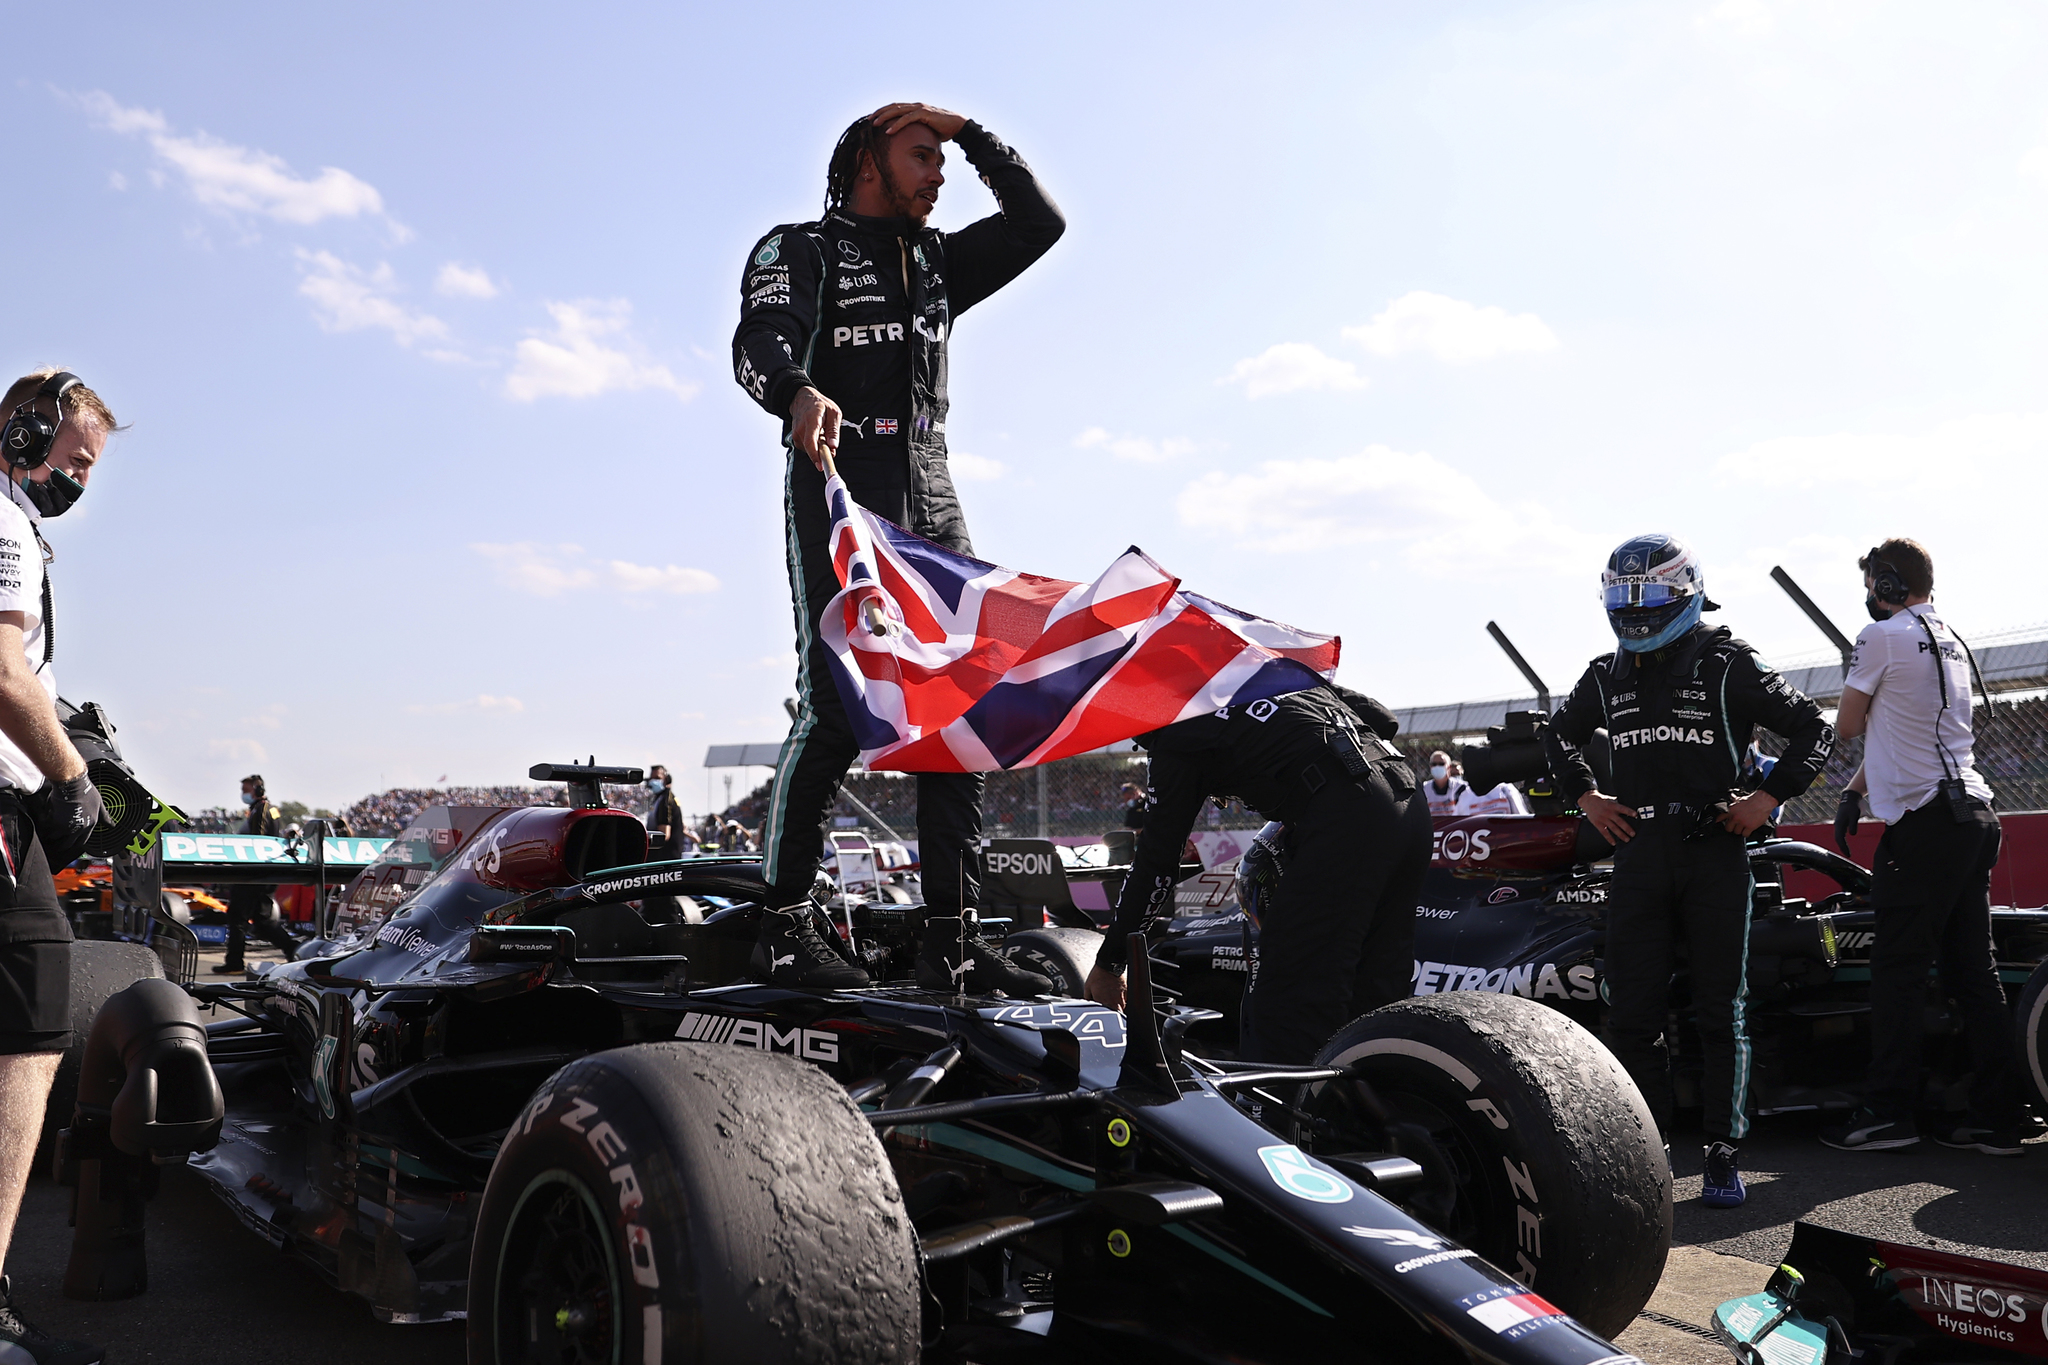 Mercedes driver Lewis lt;HIT gt;Hamilton lt;/HIT gt; of Britain celebrates after winning the British Formula One Grand Prix, at the Silverstone circuit, in Silverstone, England, Sunday, July 18, 2021. (Lars Baron/Pool photo via AP)